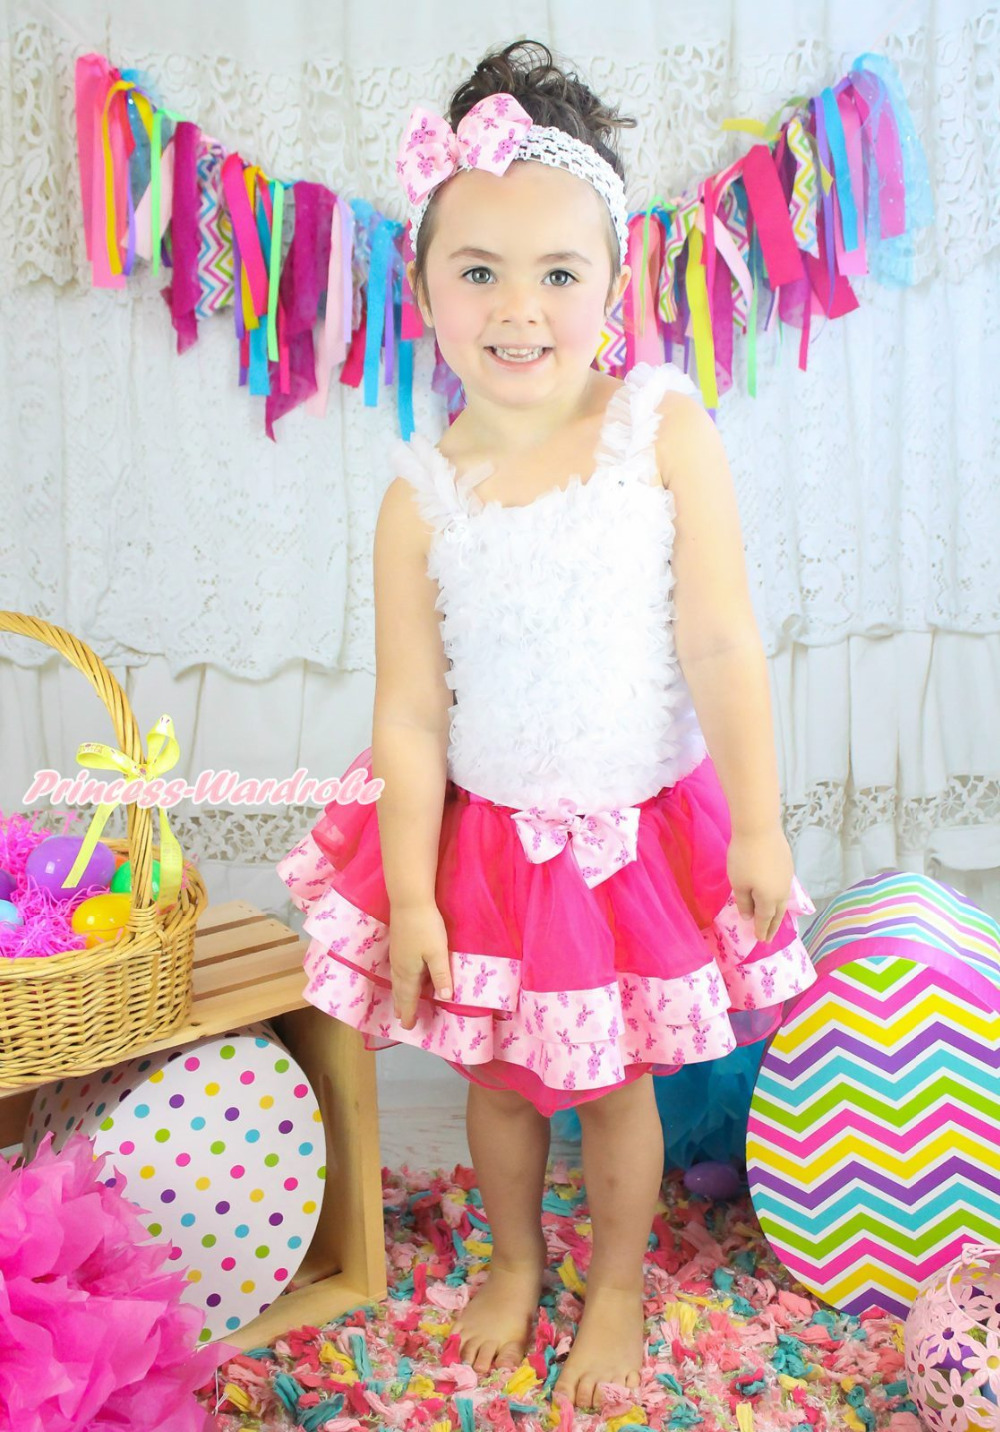 Easter White Ruffle Tank Top Hot Pink Bunny Satin Trim Pettiskirt Outfit NB-8Y MAPSA0602 hot pink top shirt camouflage lacing satin trim girl pettiskirt outfit set nb 8y mapsa0642